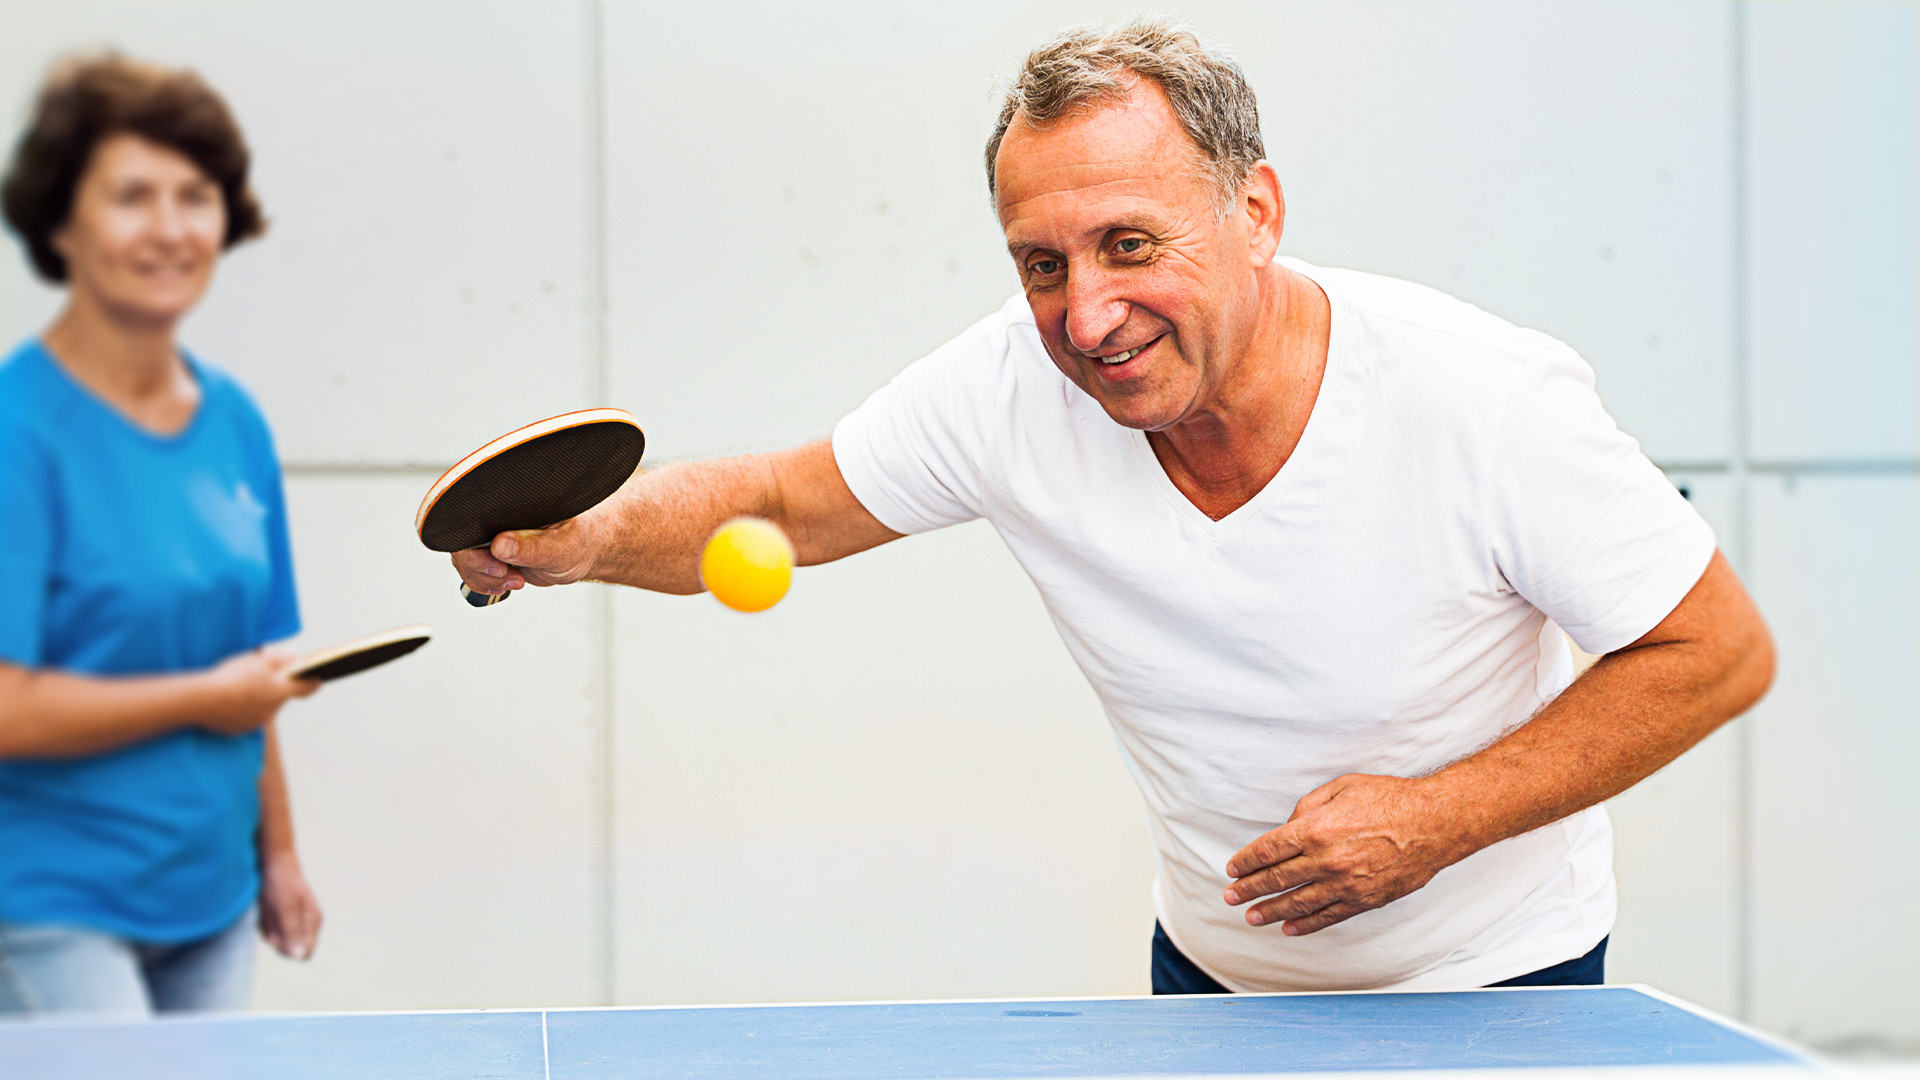 An older man and woman playing ping pong.